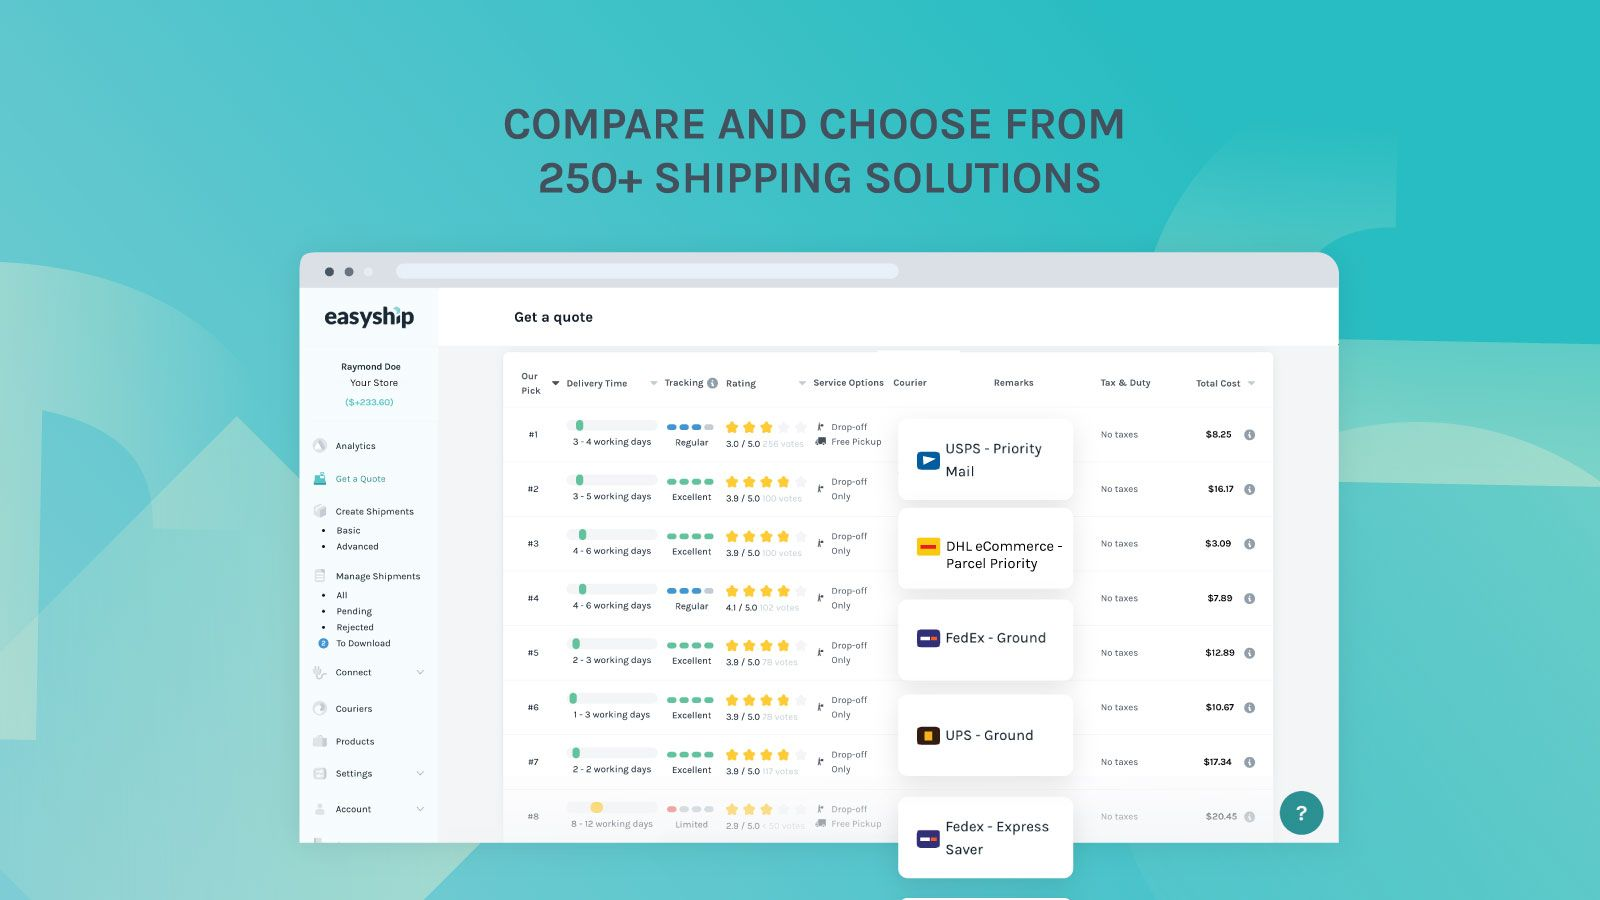 Easyship - Get a Quote